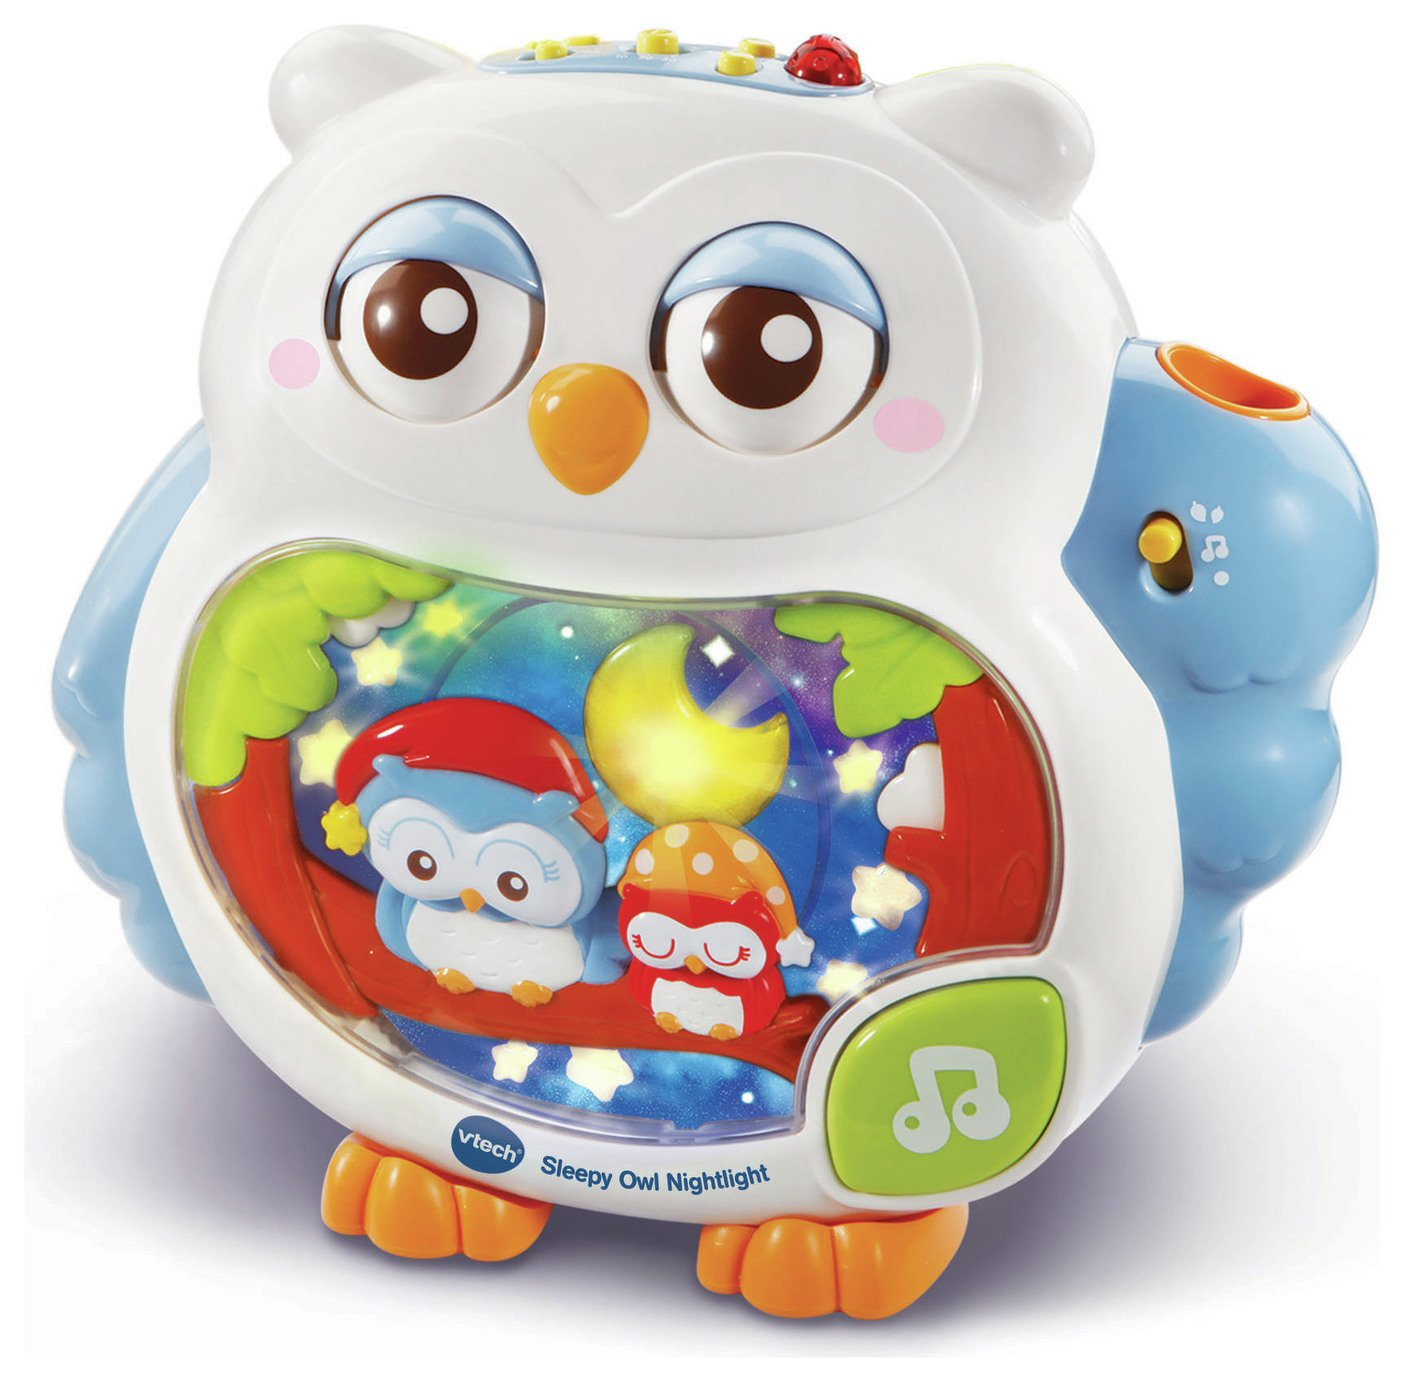 VTech Sleepy Owl Nightlight Cot Soother